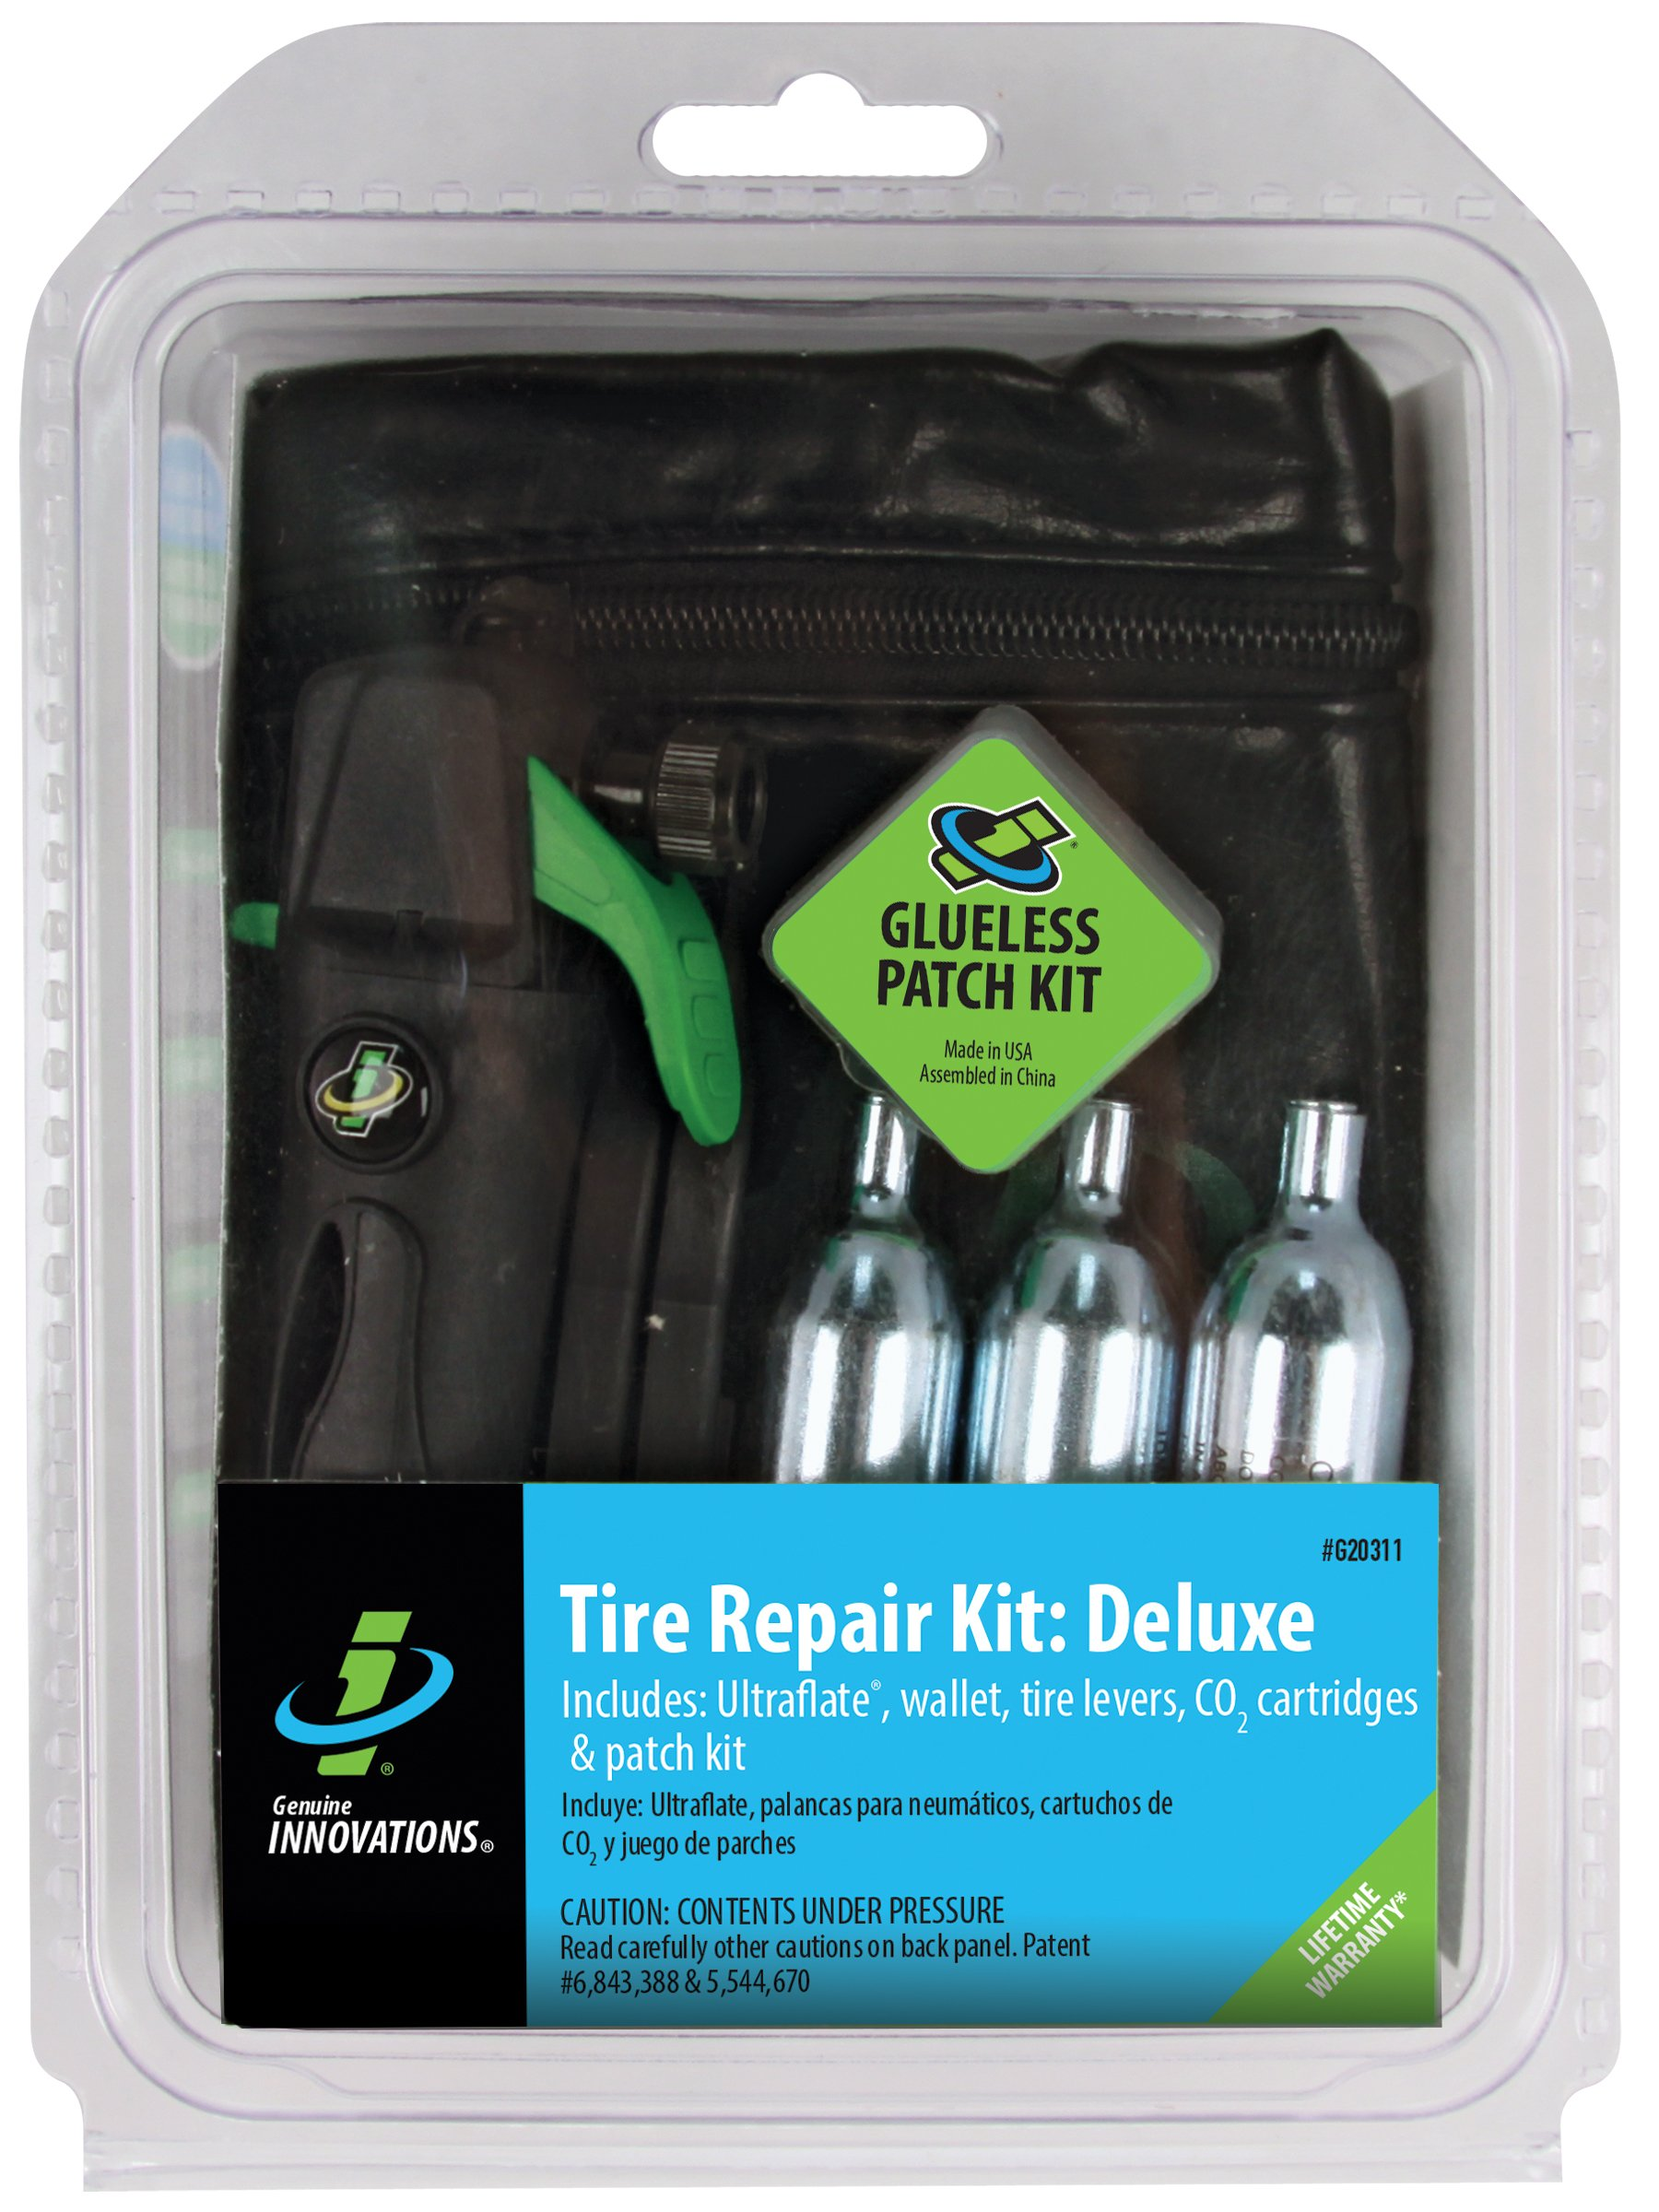 Genuine Innovations G20311 Deluxe Tire Repair and Inflation Kit